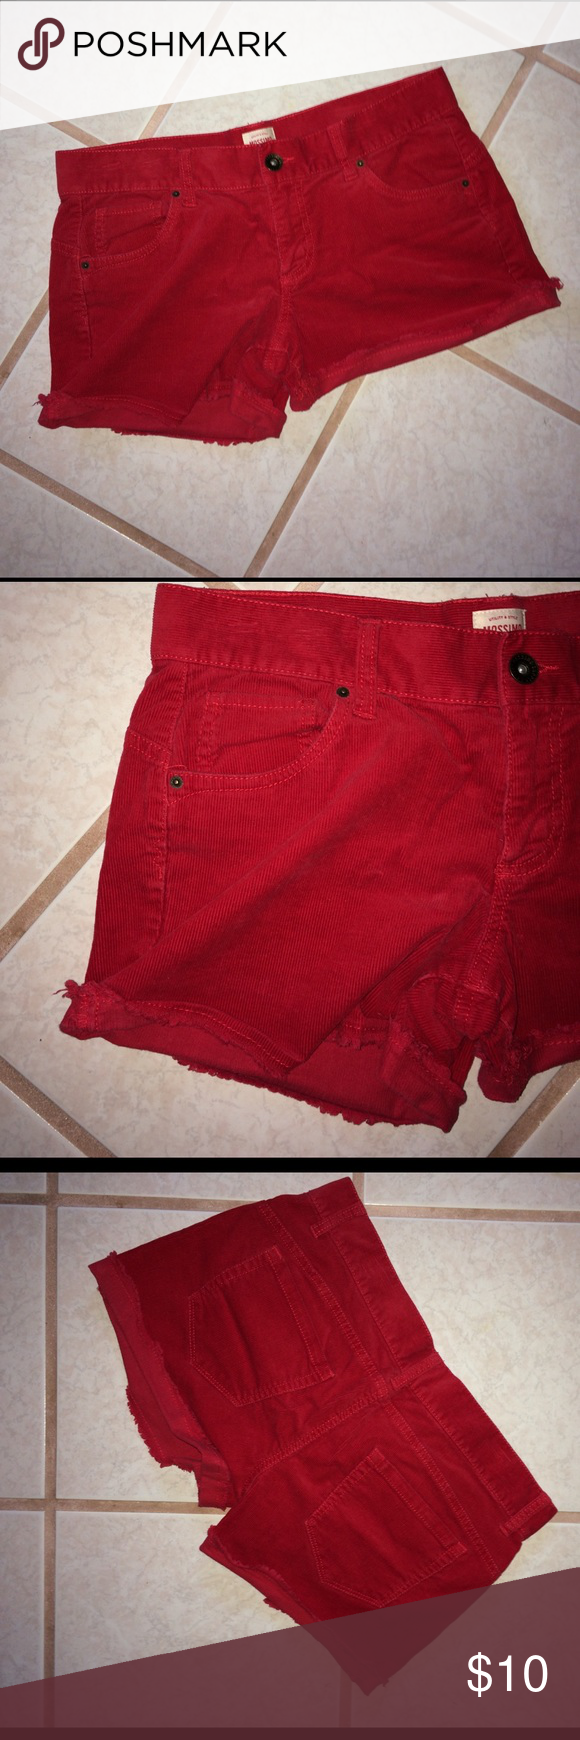 Mossimo Corduroy Shorts, Size 9   Jean shorts, Red shorts and Target